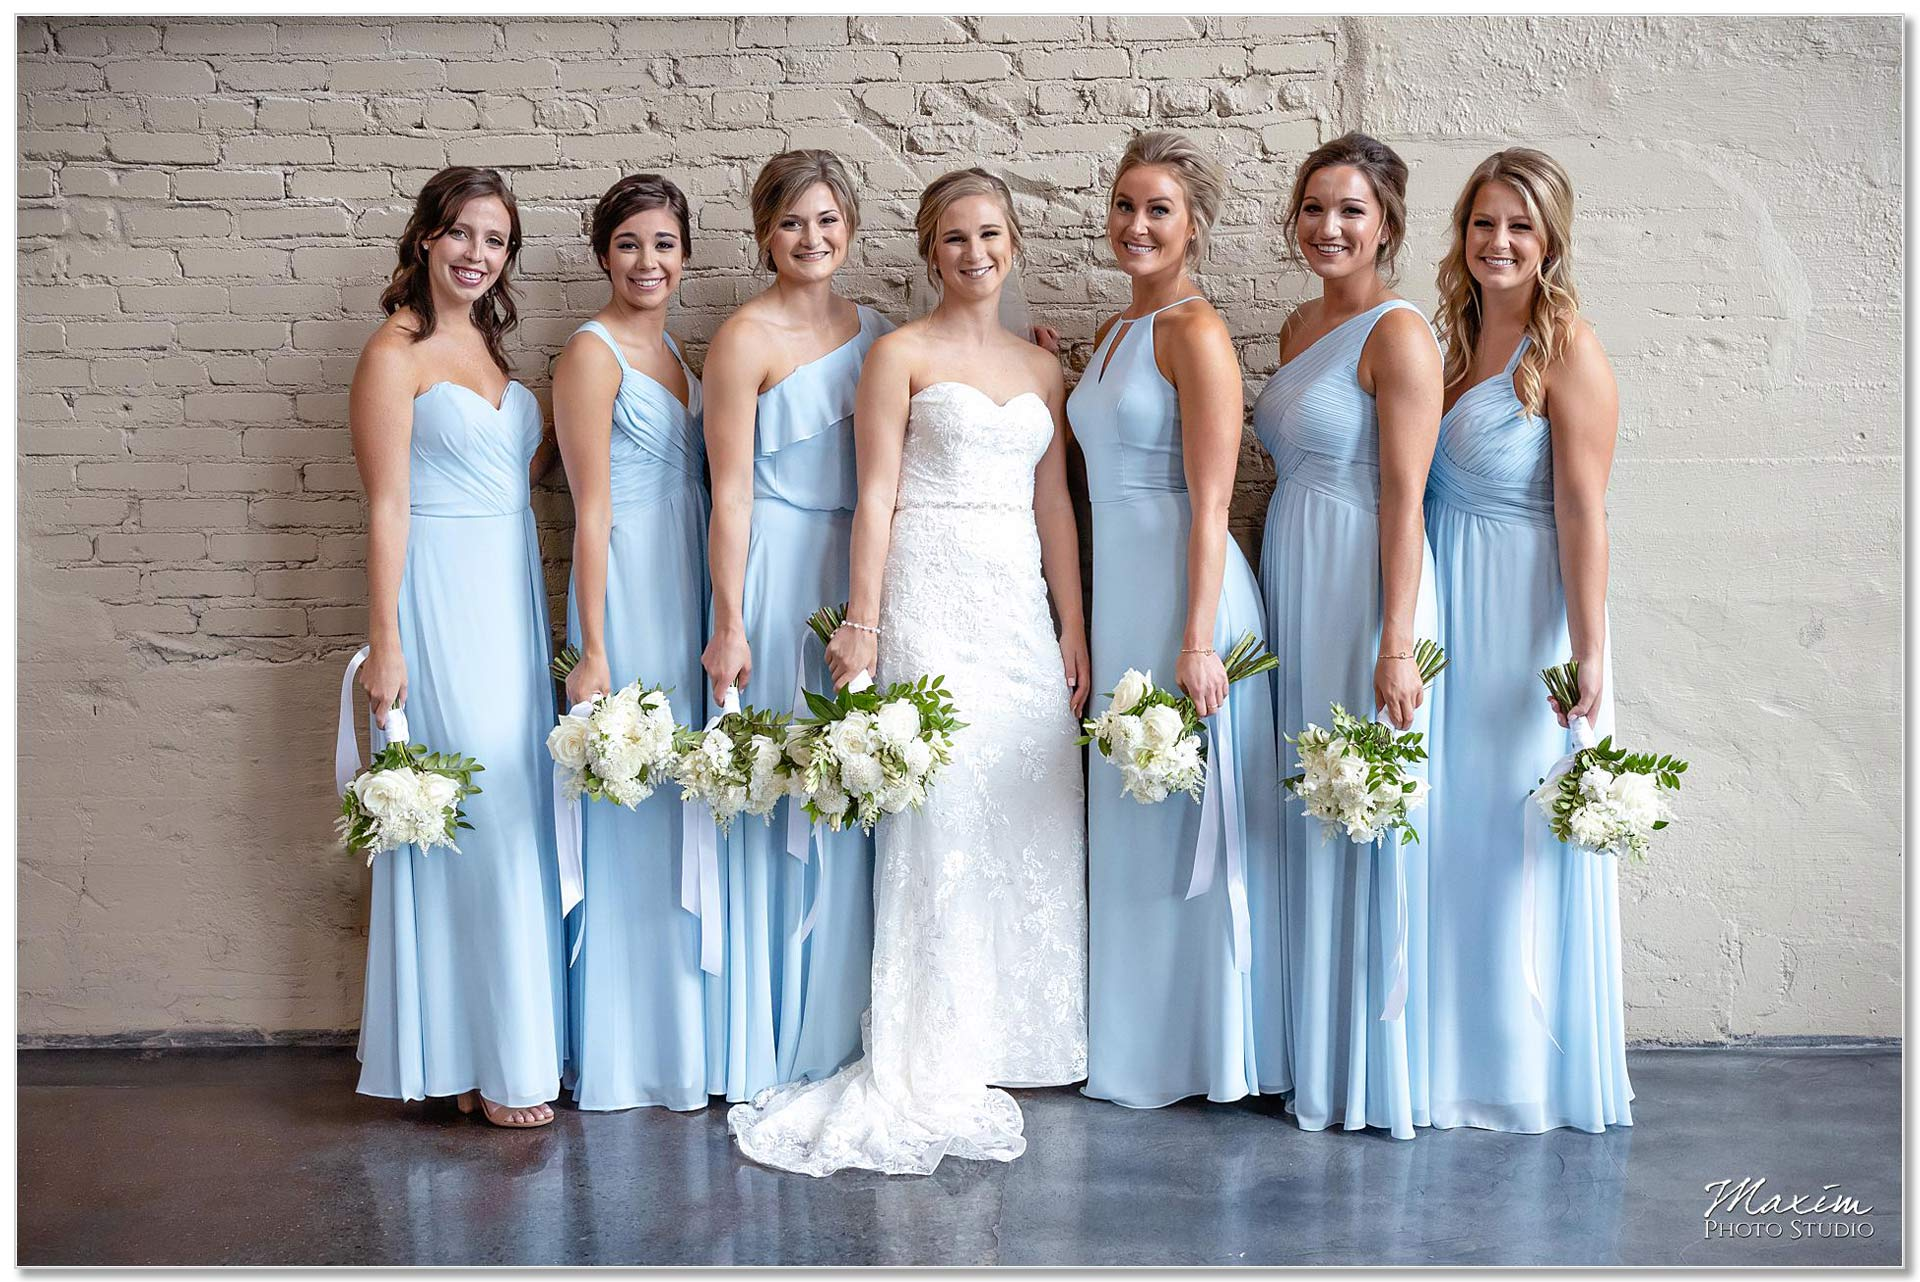 The Steam Plant Bride portraits